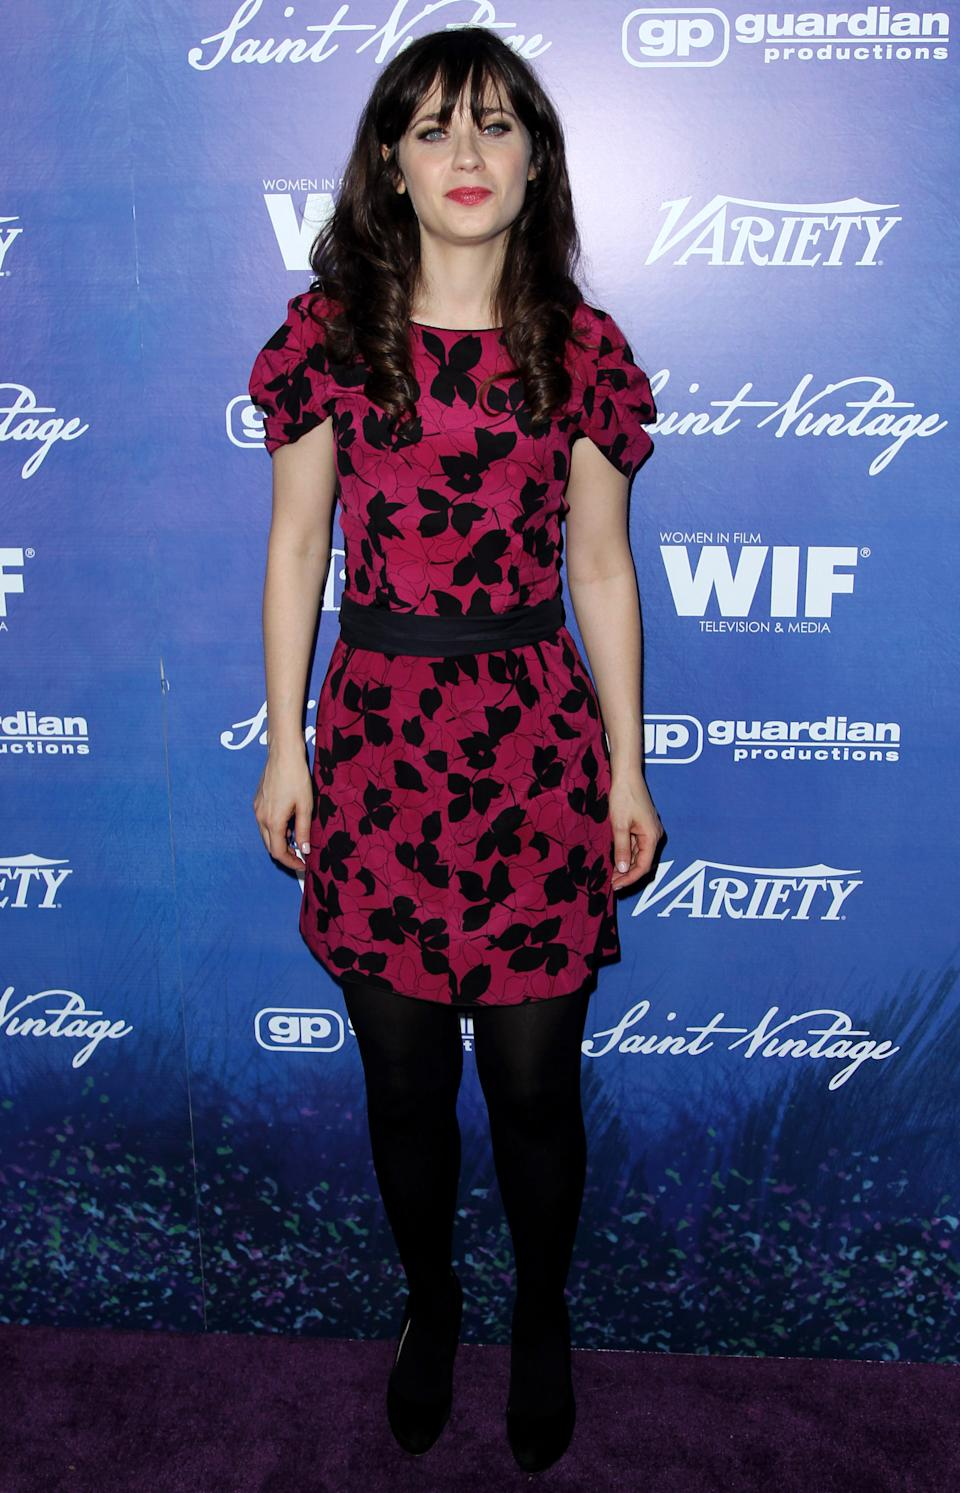 Zooey Deschanel attends the Variety and Women in Film Pre-Emmy Event at Scarpetta on Friday, Sept. 21, 2012, in Beverly Hills, Calif. (Photo by Matt Sayles/Invision/AP)